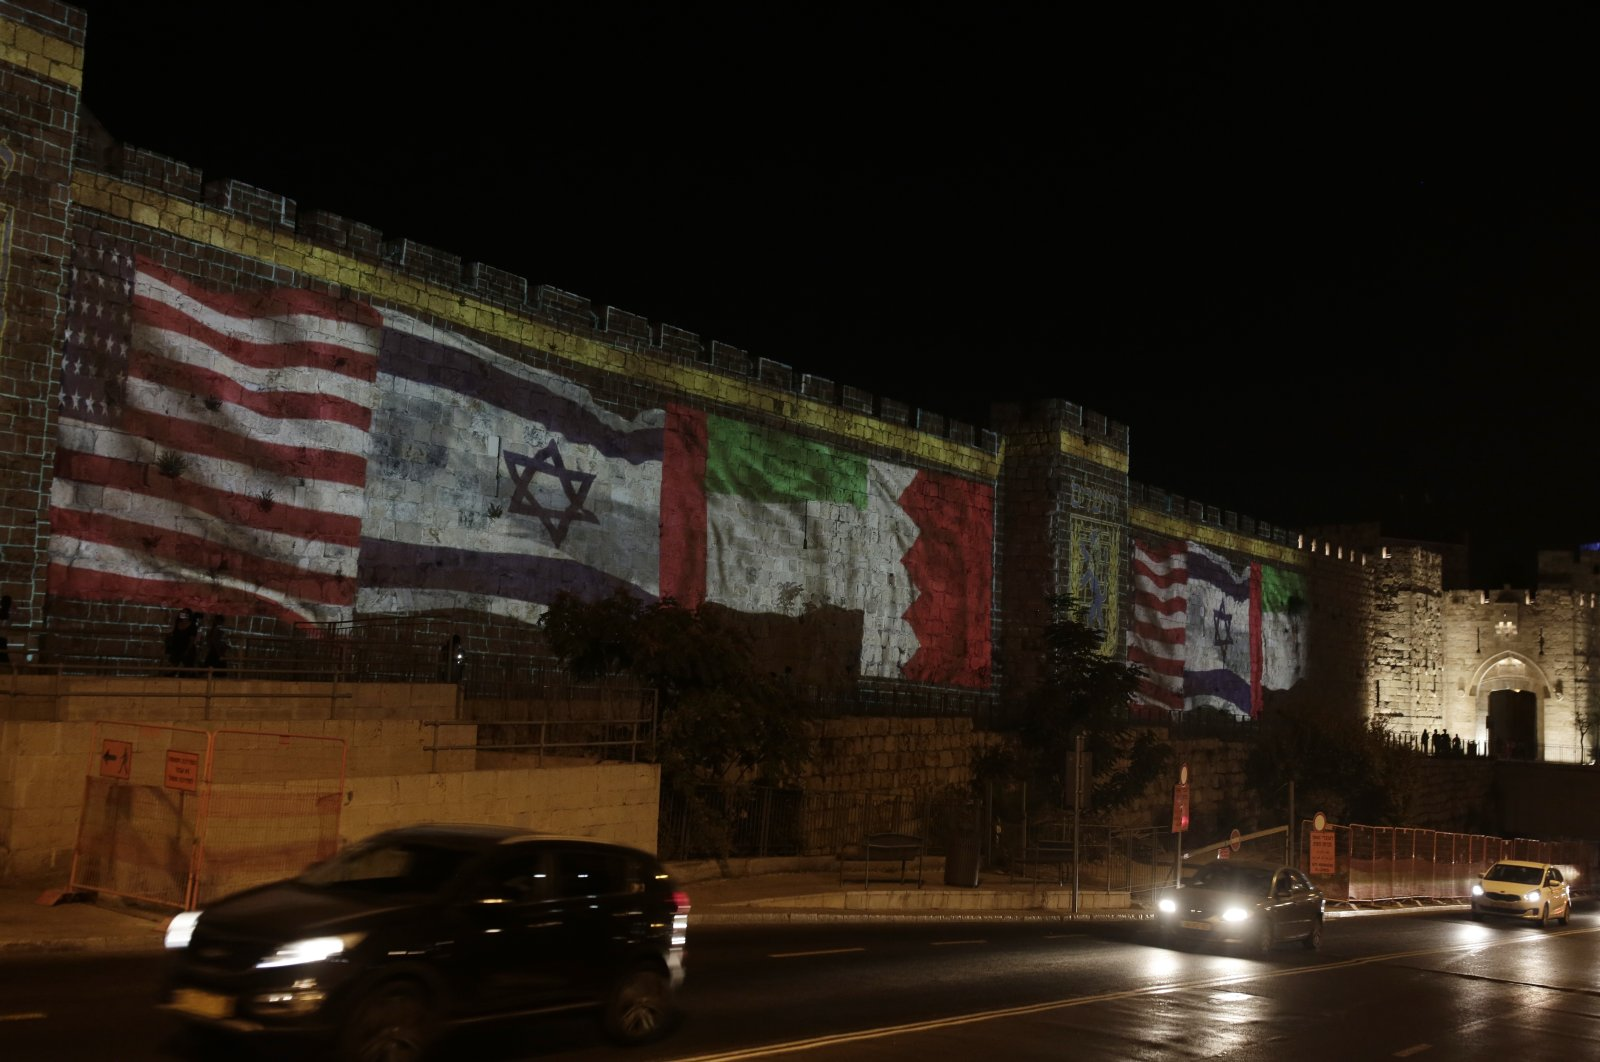 Representations of the U.S., Israeli, Emirati and Bahraini flags are projected onto a wall, marking the day of a signing ceremony in Washington signifying the two Gulf nations' normalization with Israel, Jerusalem, Sept. 15, 2020. (AP Photo)